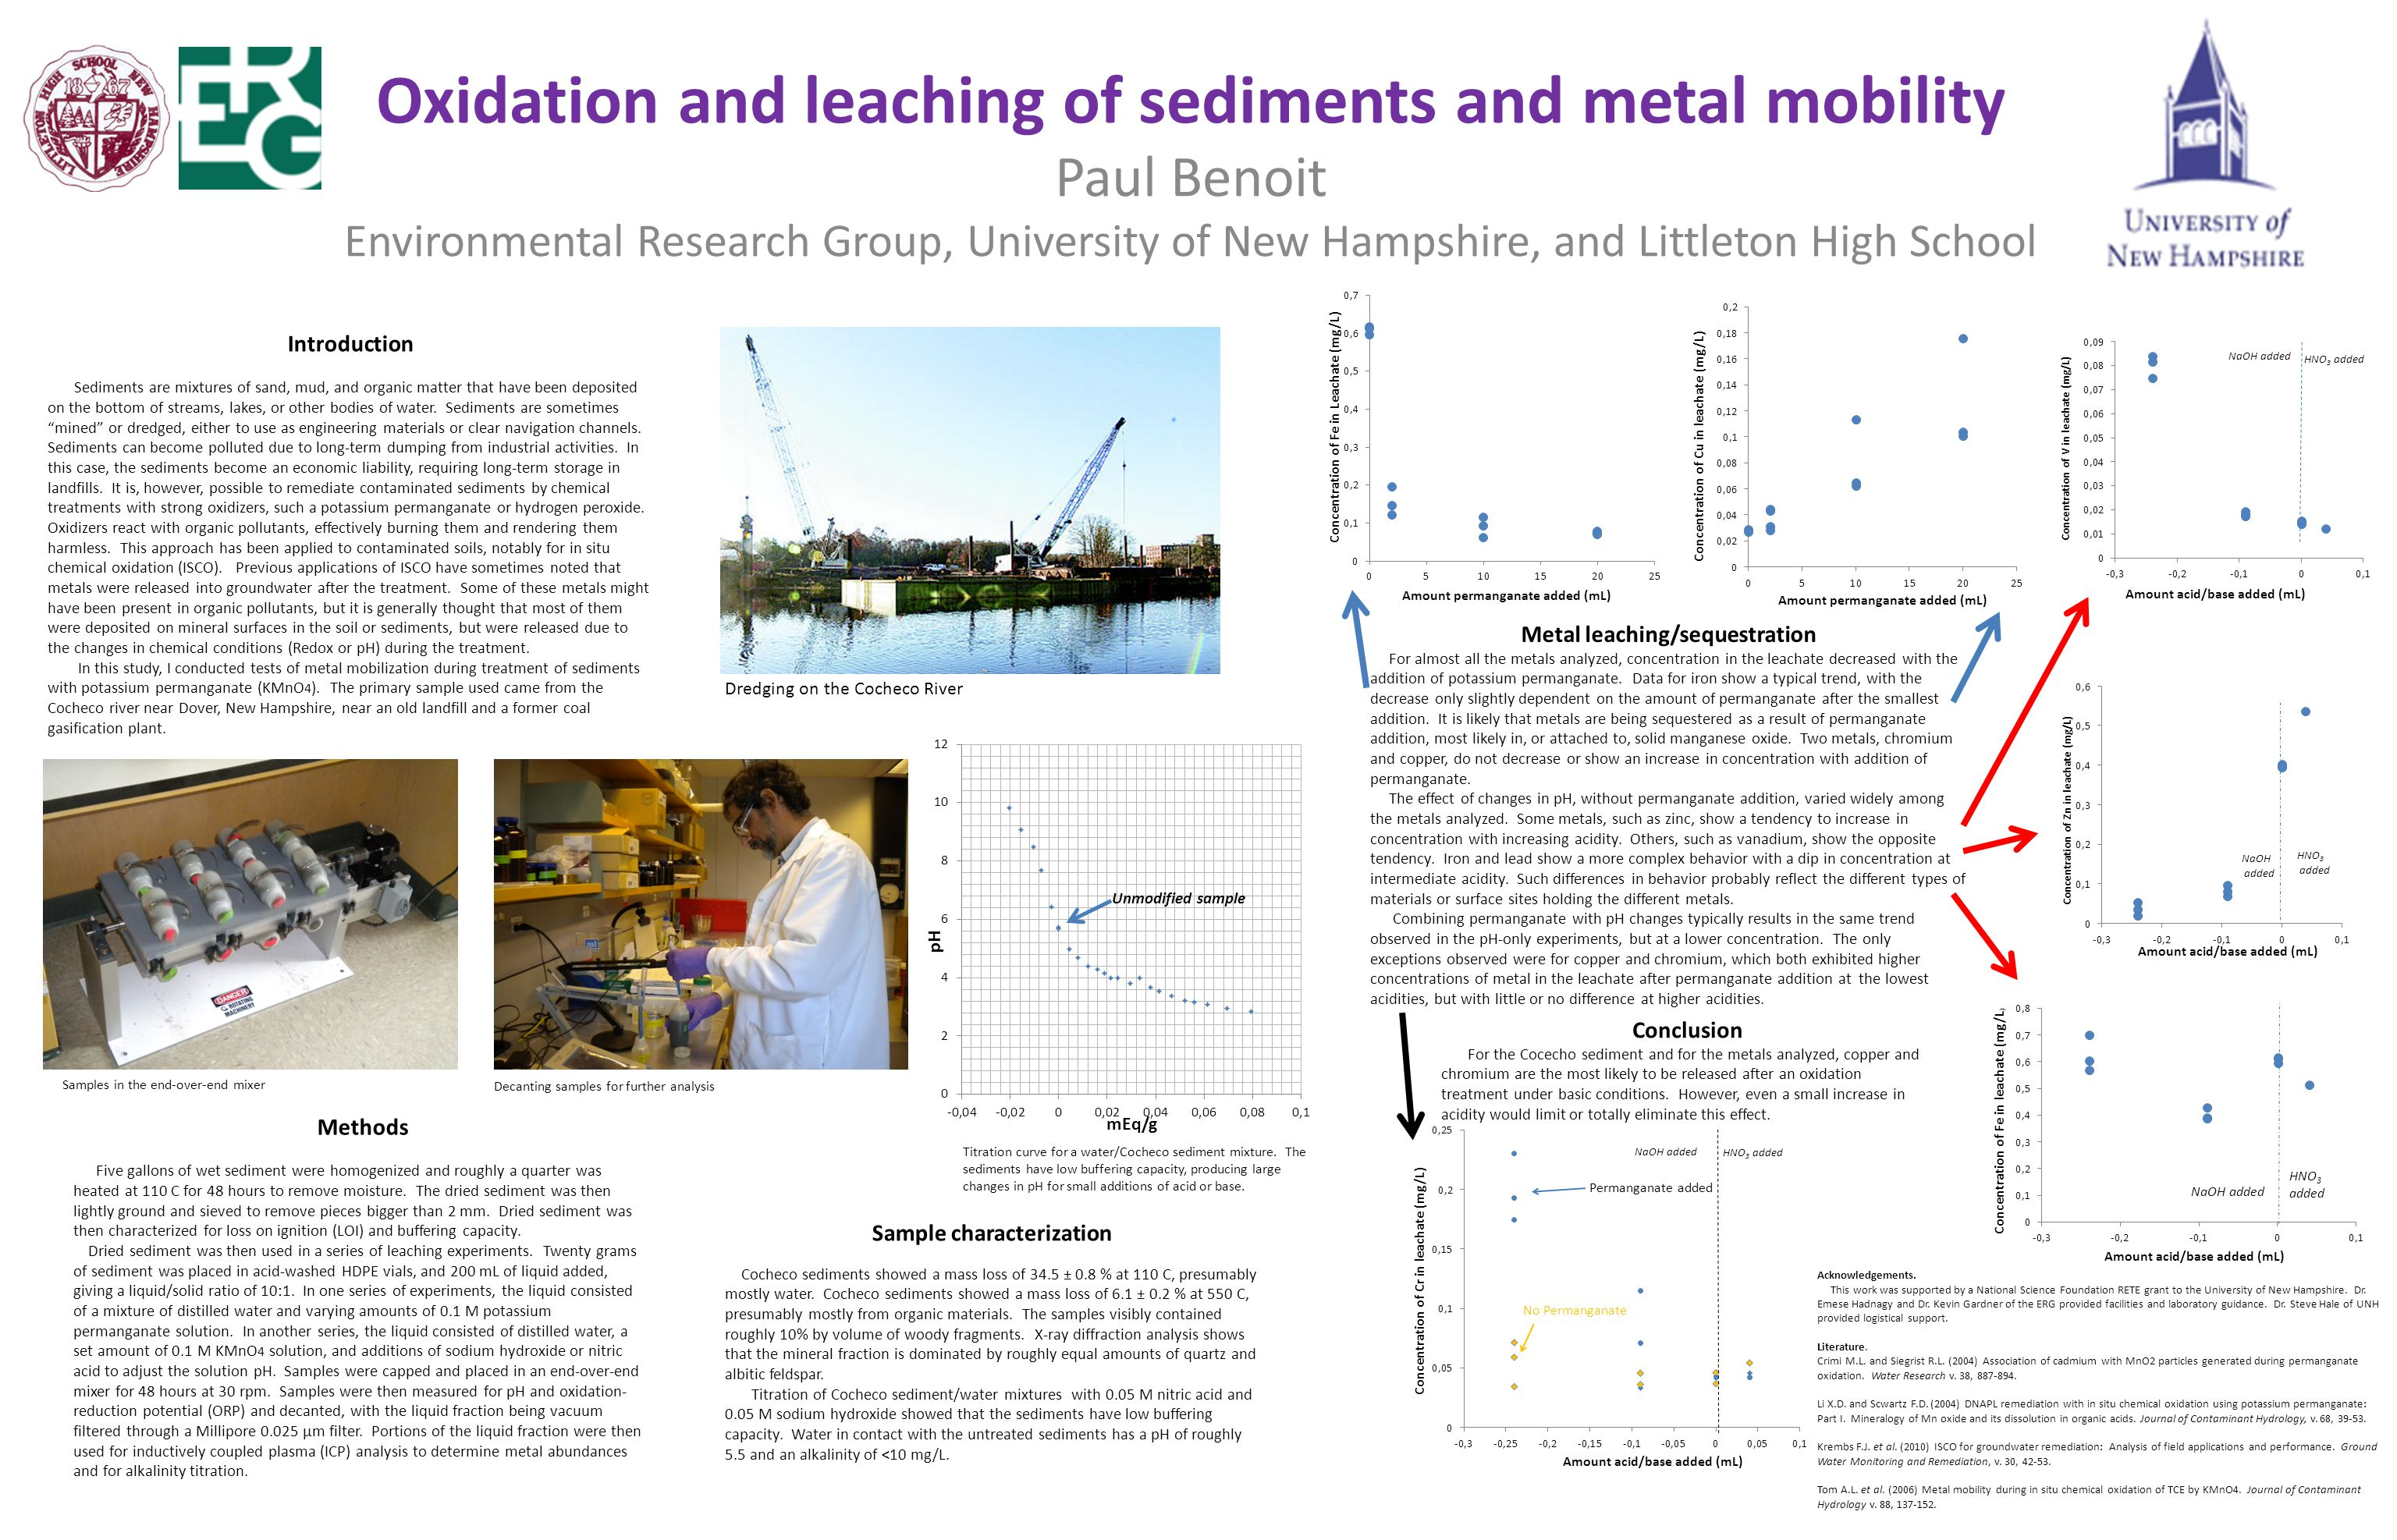 Oxidation and leaching of sediments and metal mobility Paul Benoit Environmental Research Group, University of New Hampshire, and Littleton High Schoo